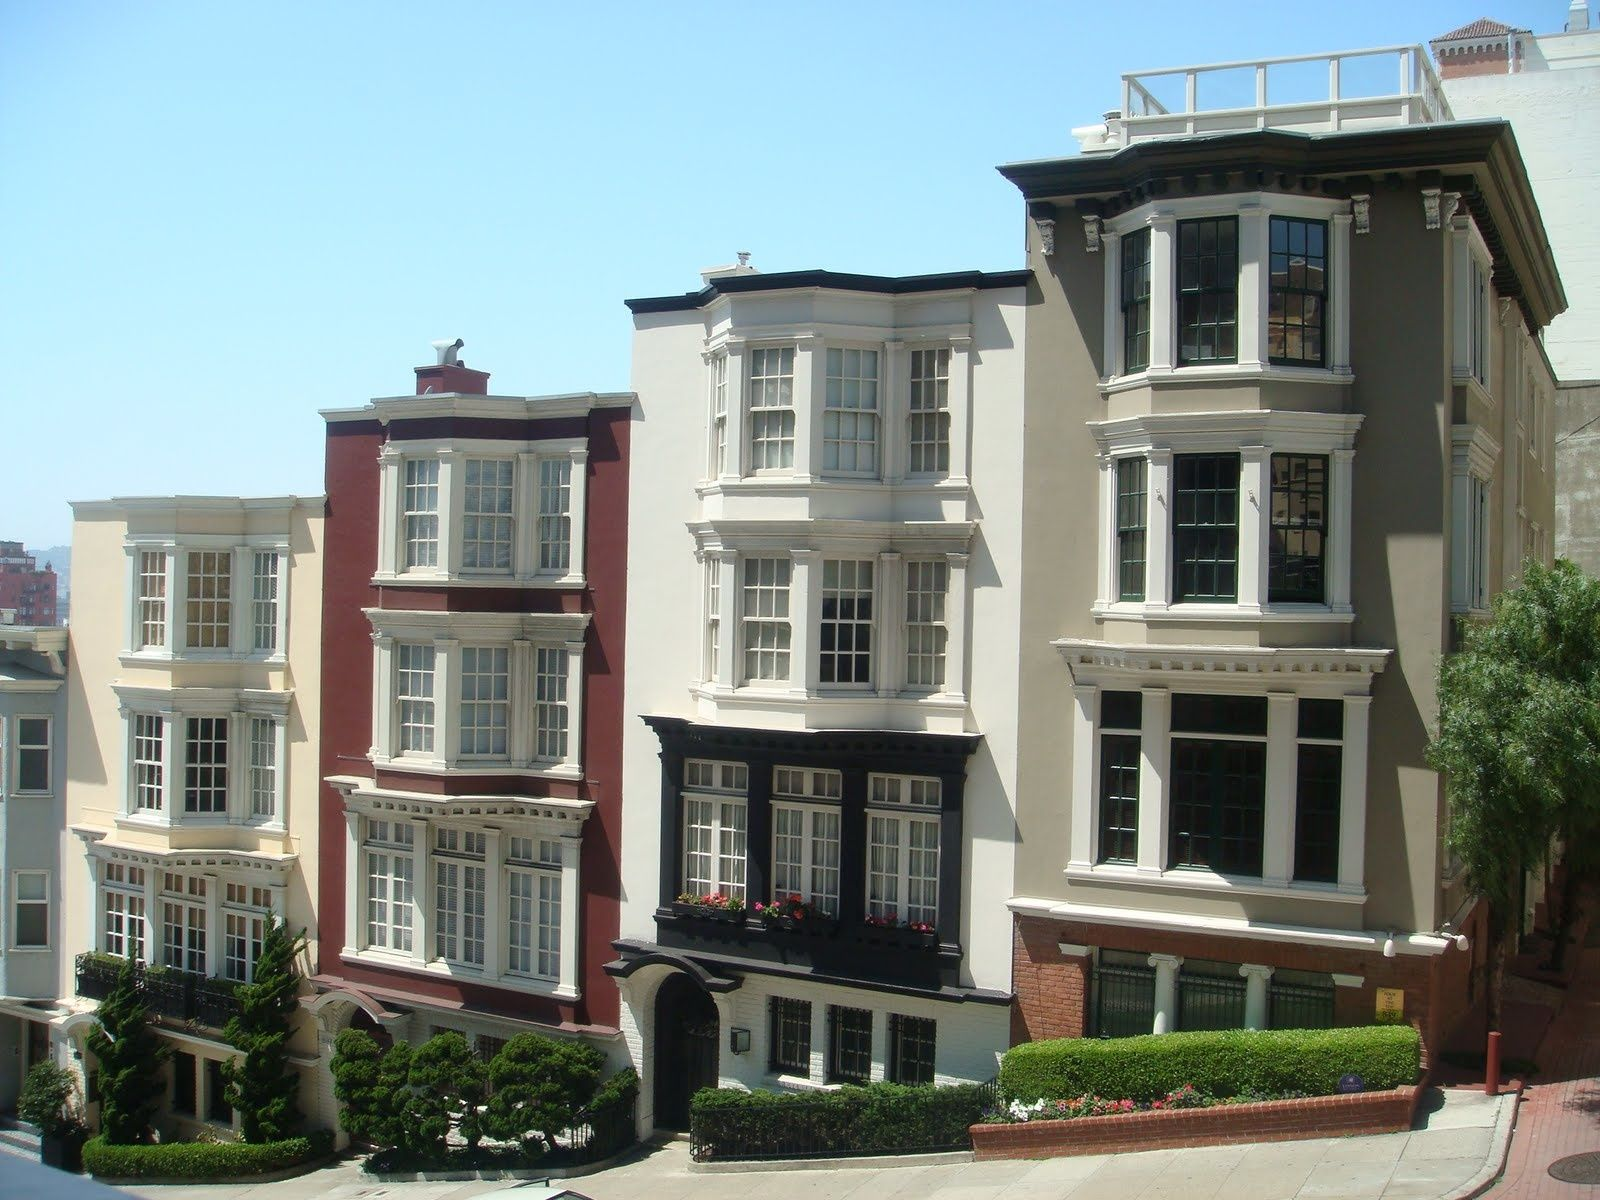 Beautiful cityscape view from row houses in San Francisco.